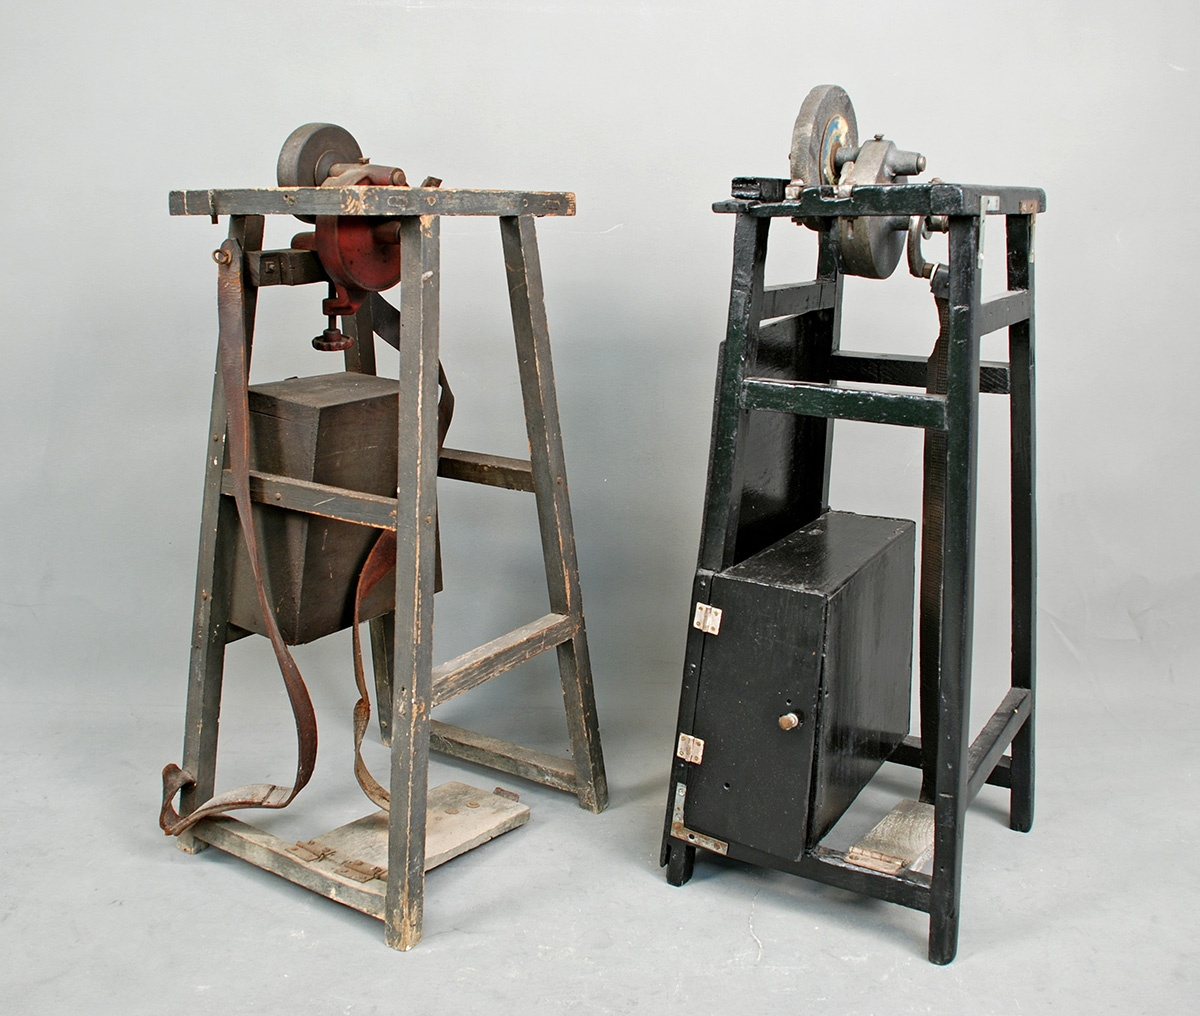 Antonio and Francesco Antonucci's scissor sharpeners, 1917. Gift of Anthony Jr. and Elizabeth Antonucci in honor of Antonio Antonucci. Gift of the Antonucci family. Italian American Collection at the Heinz History Center.